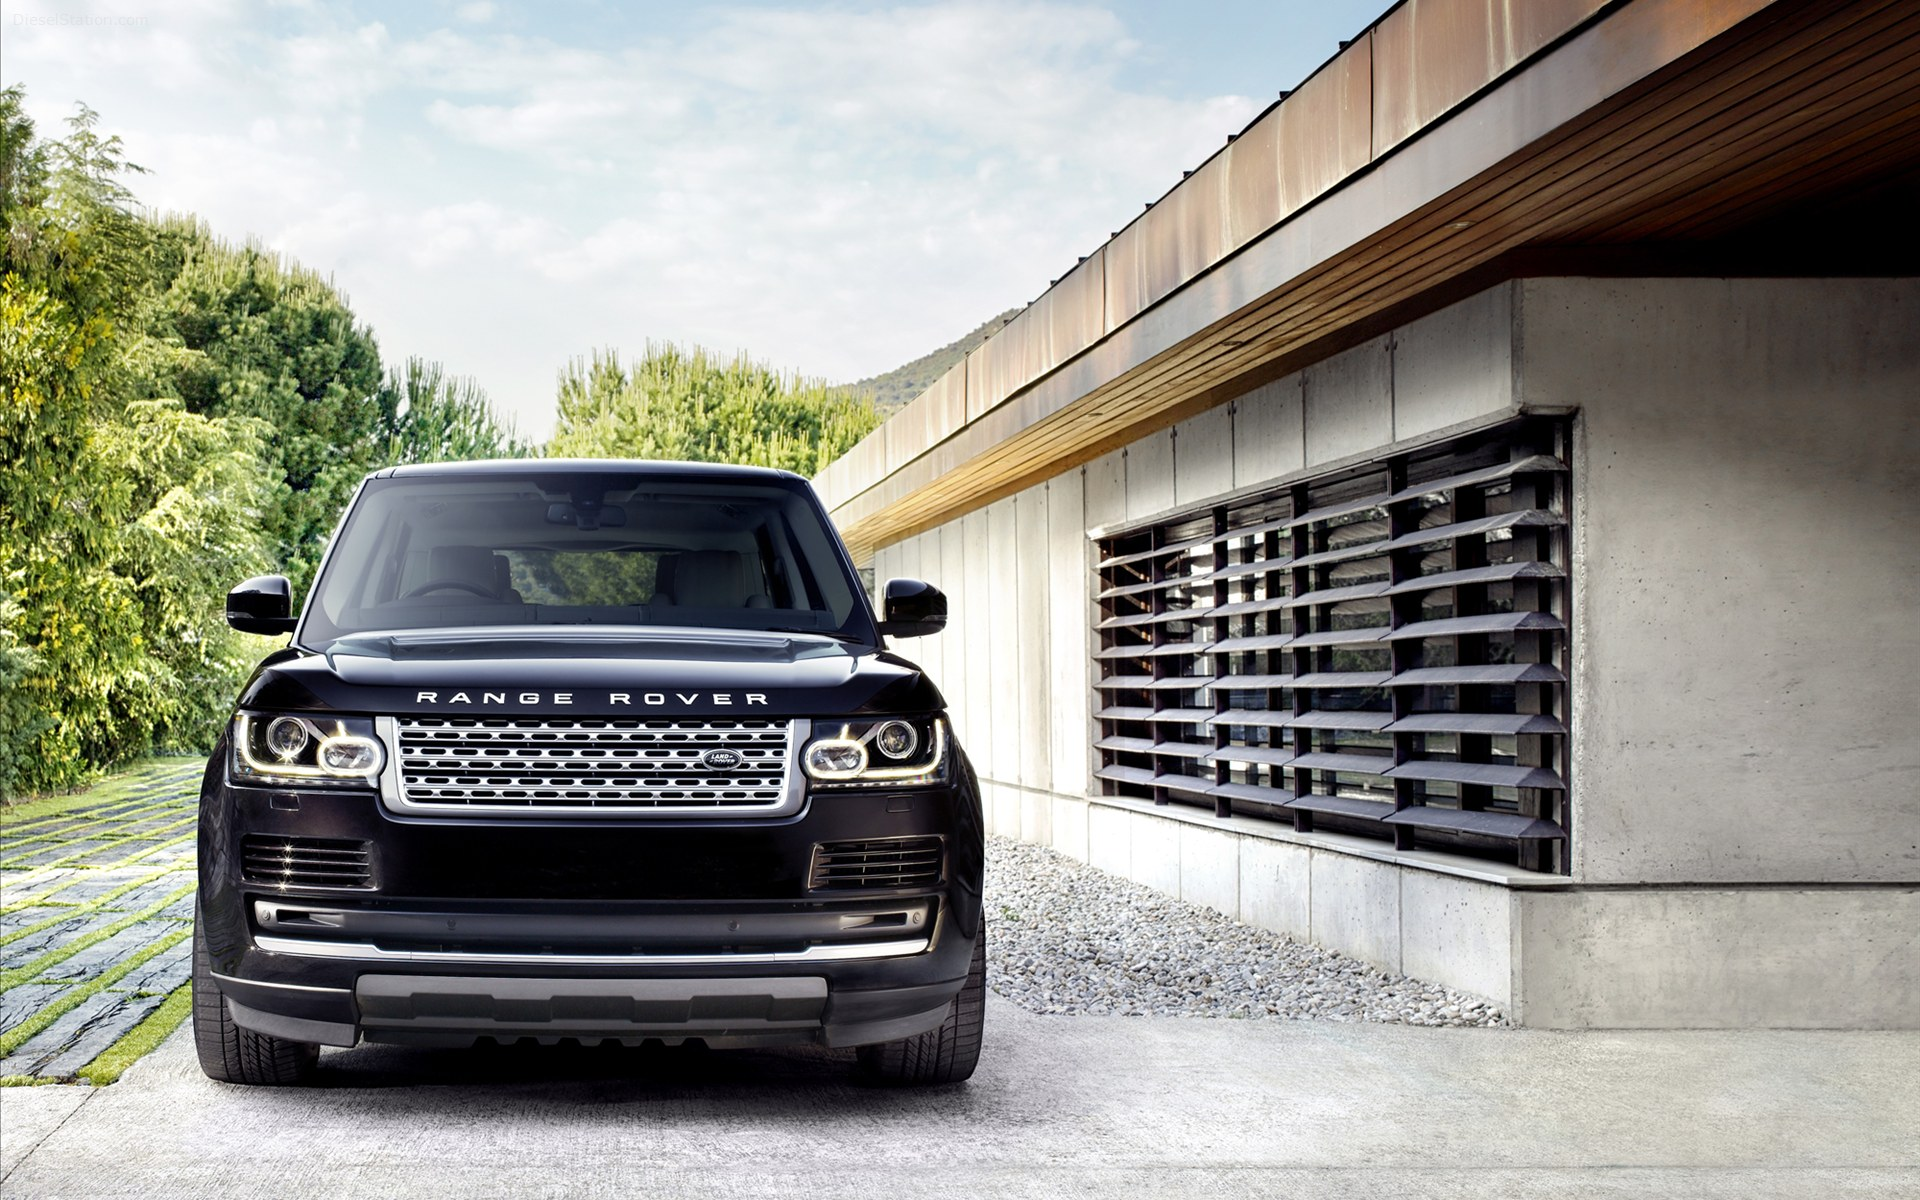 2013 Range Rover Wallpaper Hd Car Wallpapers Id 3027